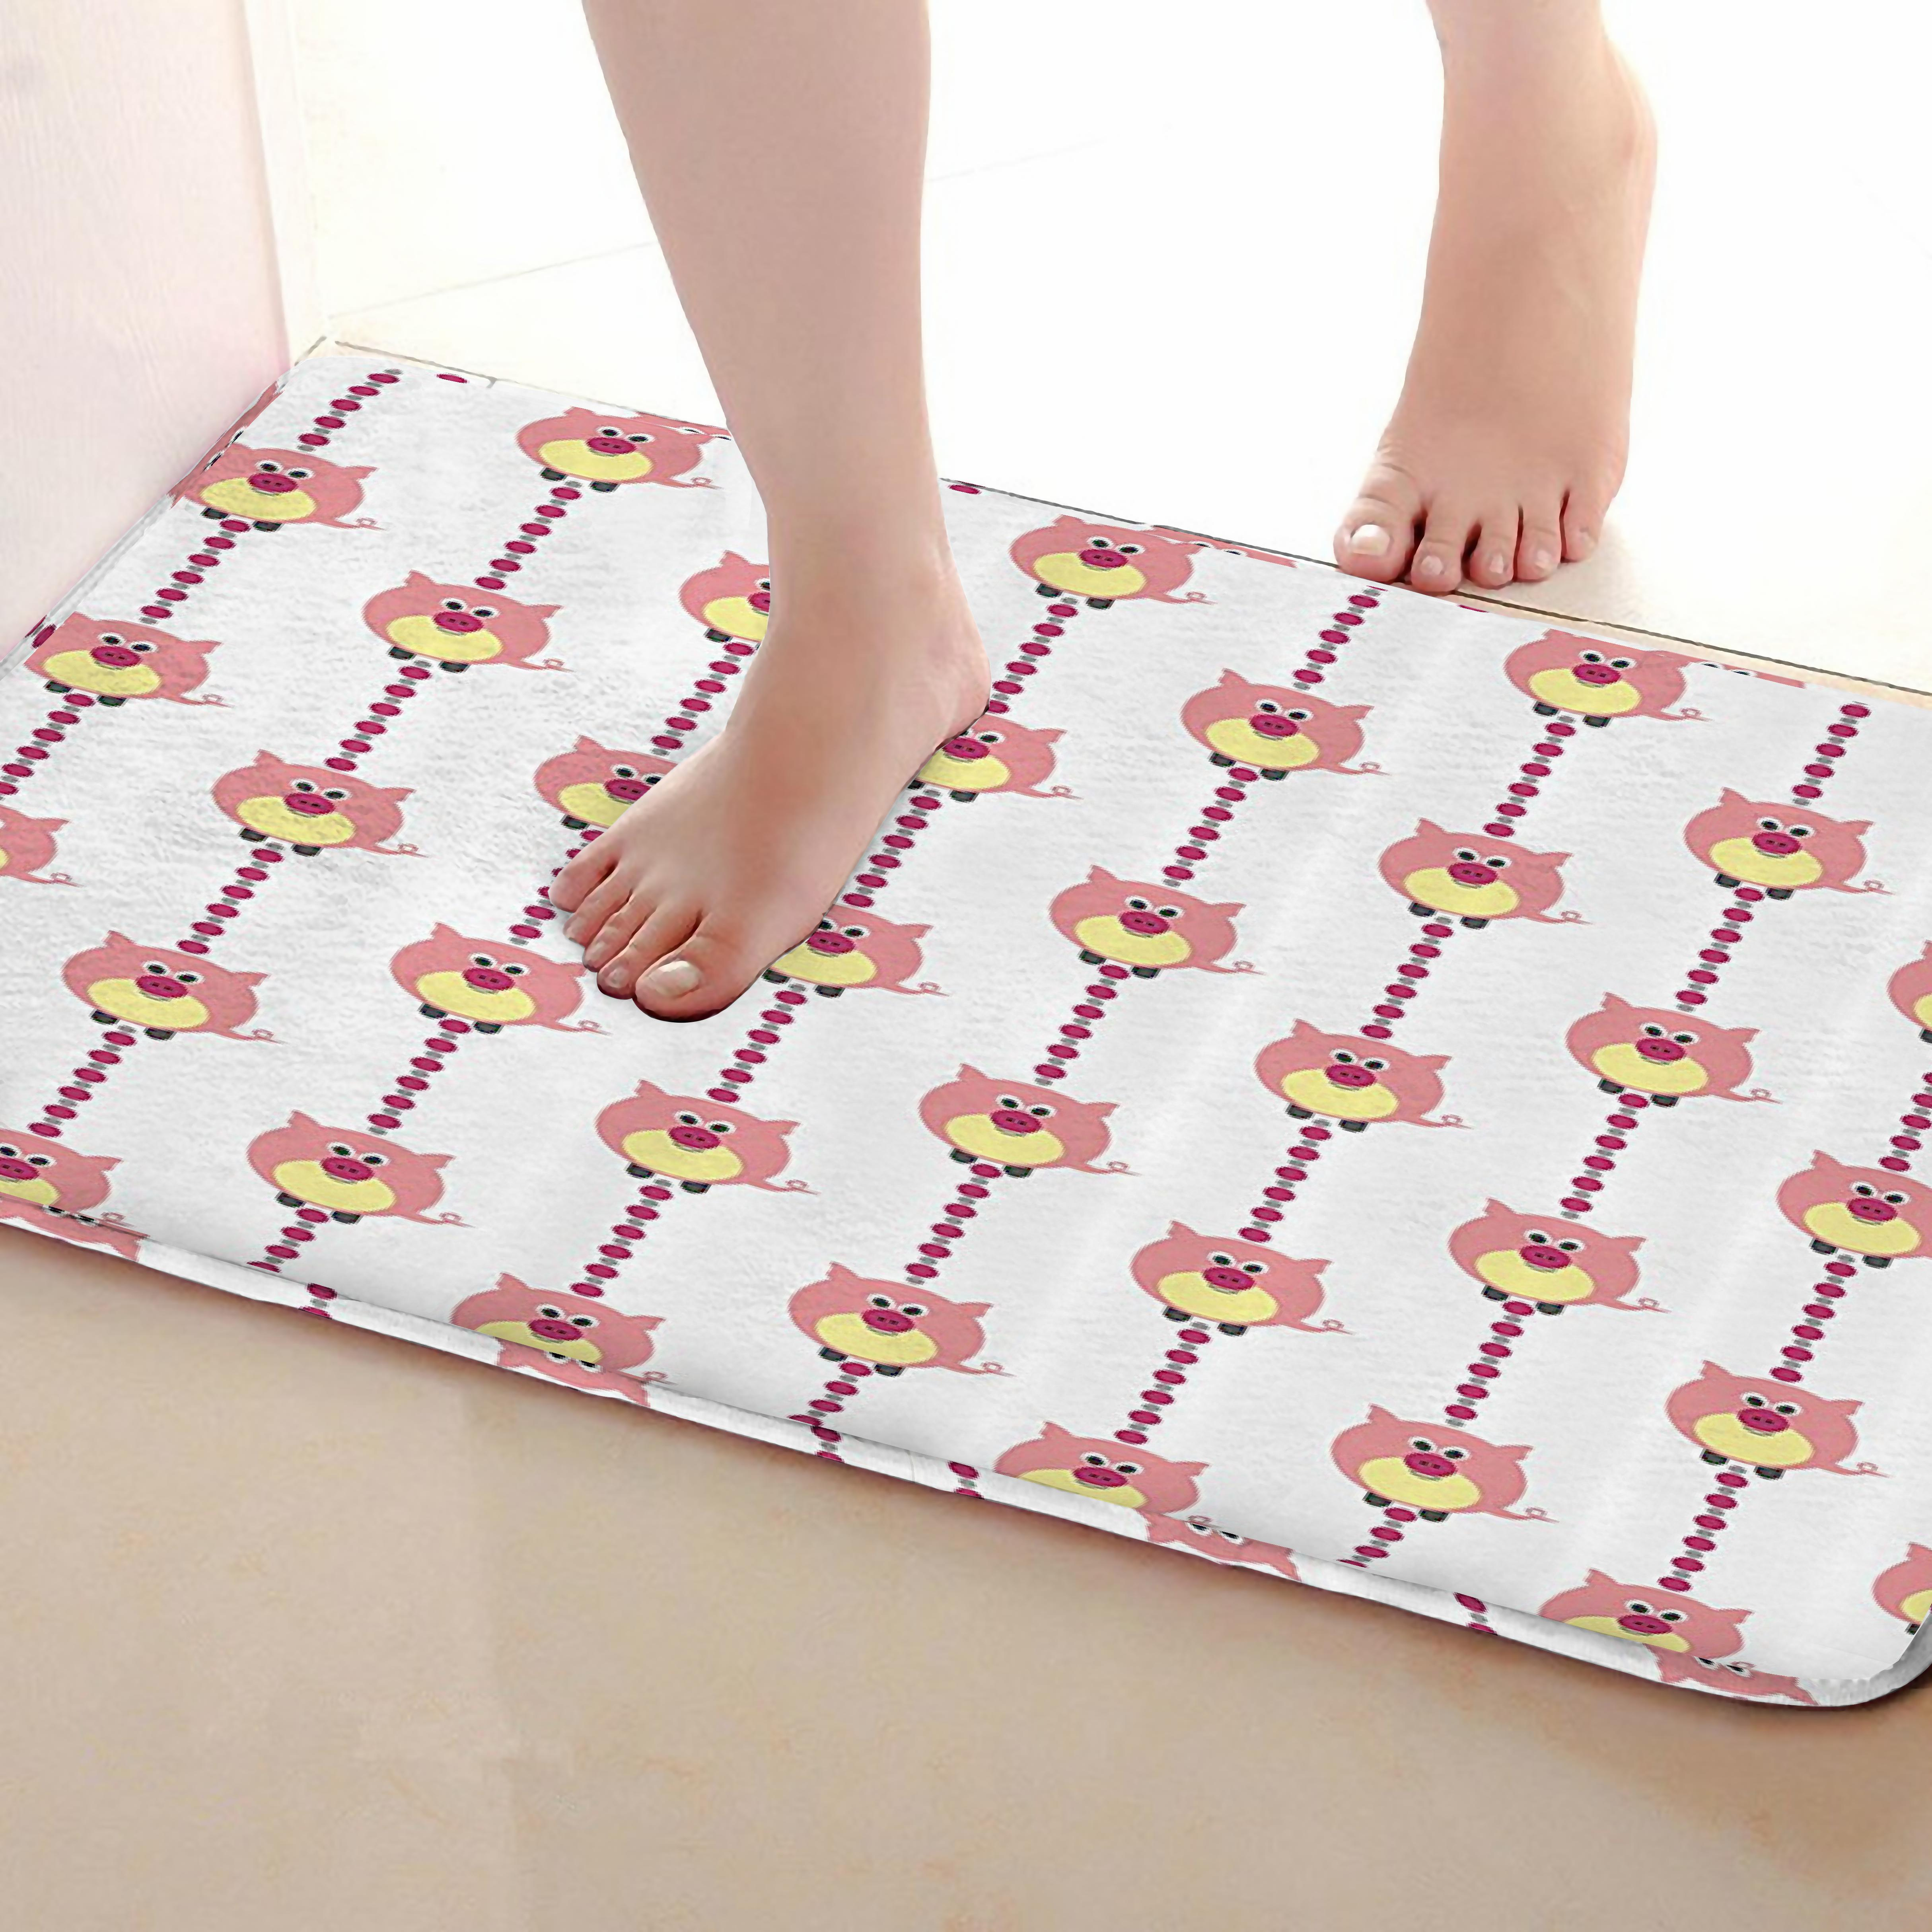 Pig Style Bathroom Mat,Funny Anti Skid Bath Mat,Shower Curtains Accessories,Matching Your Shower Curtain